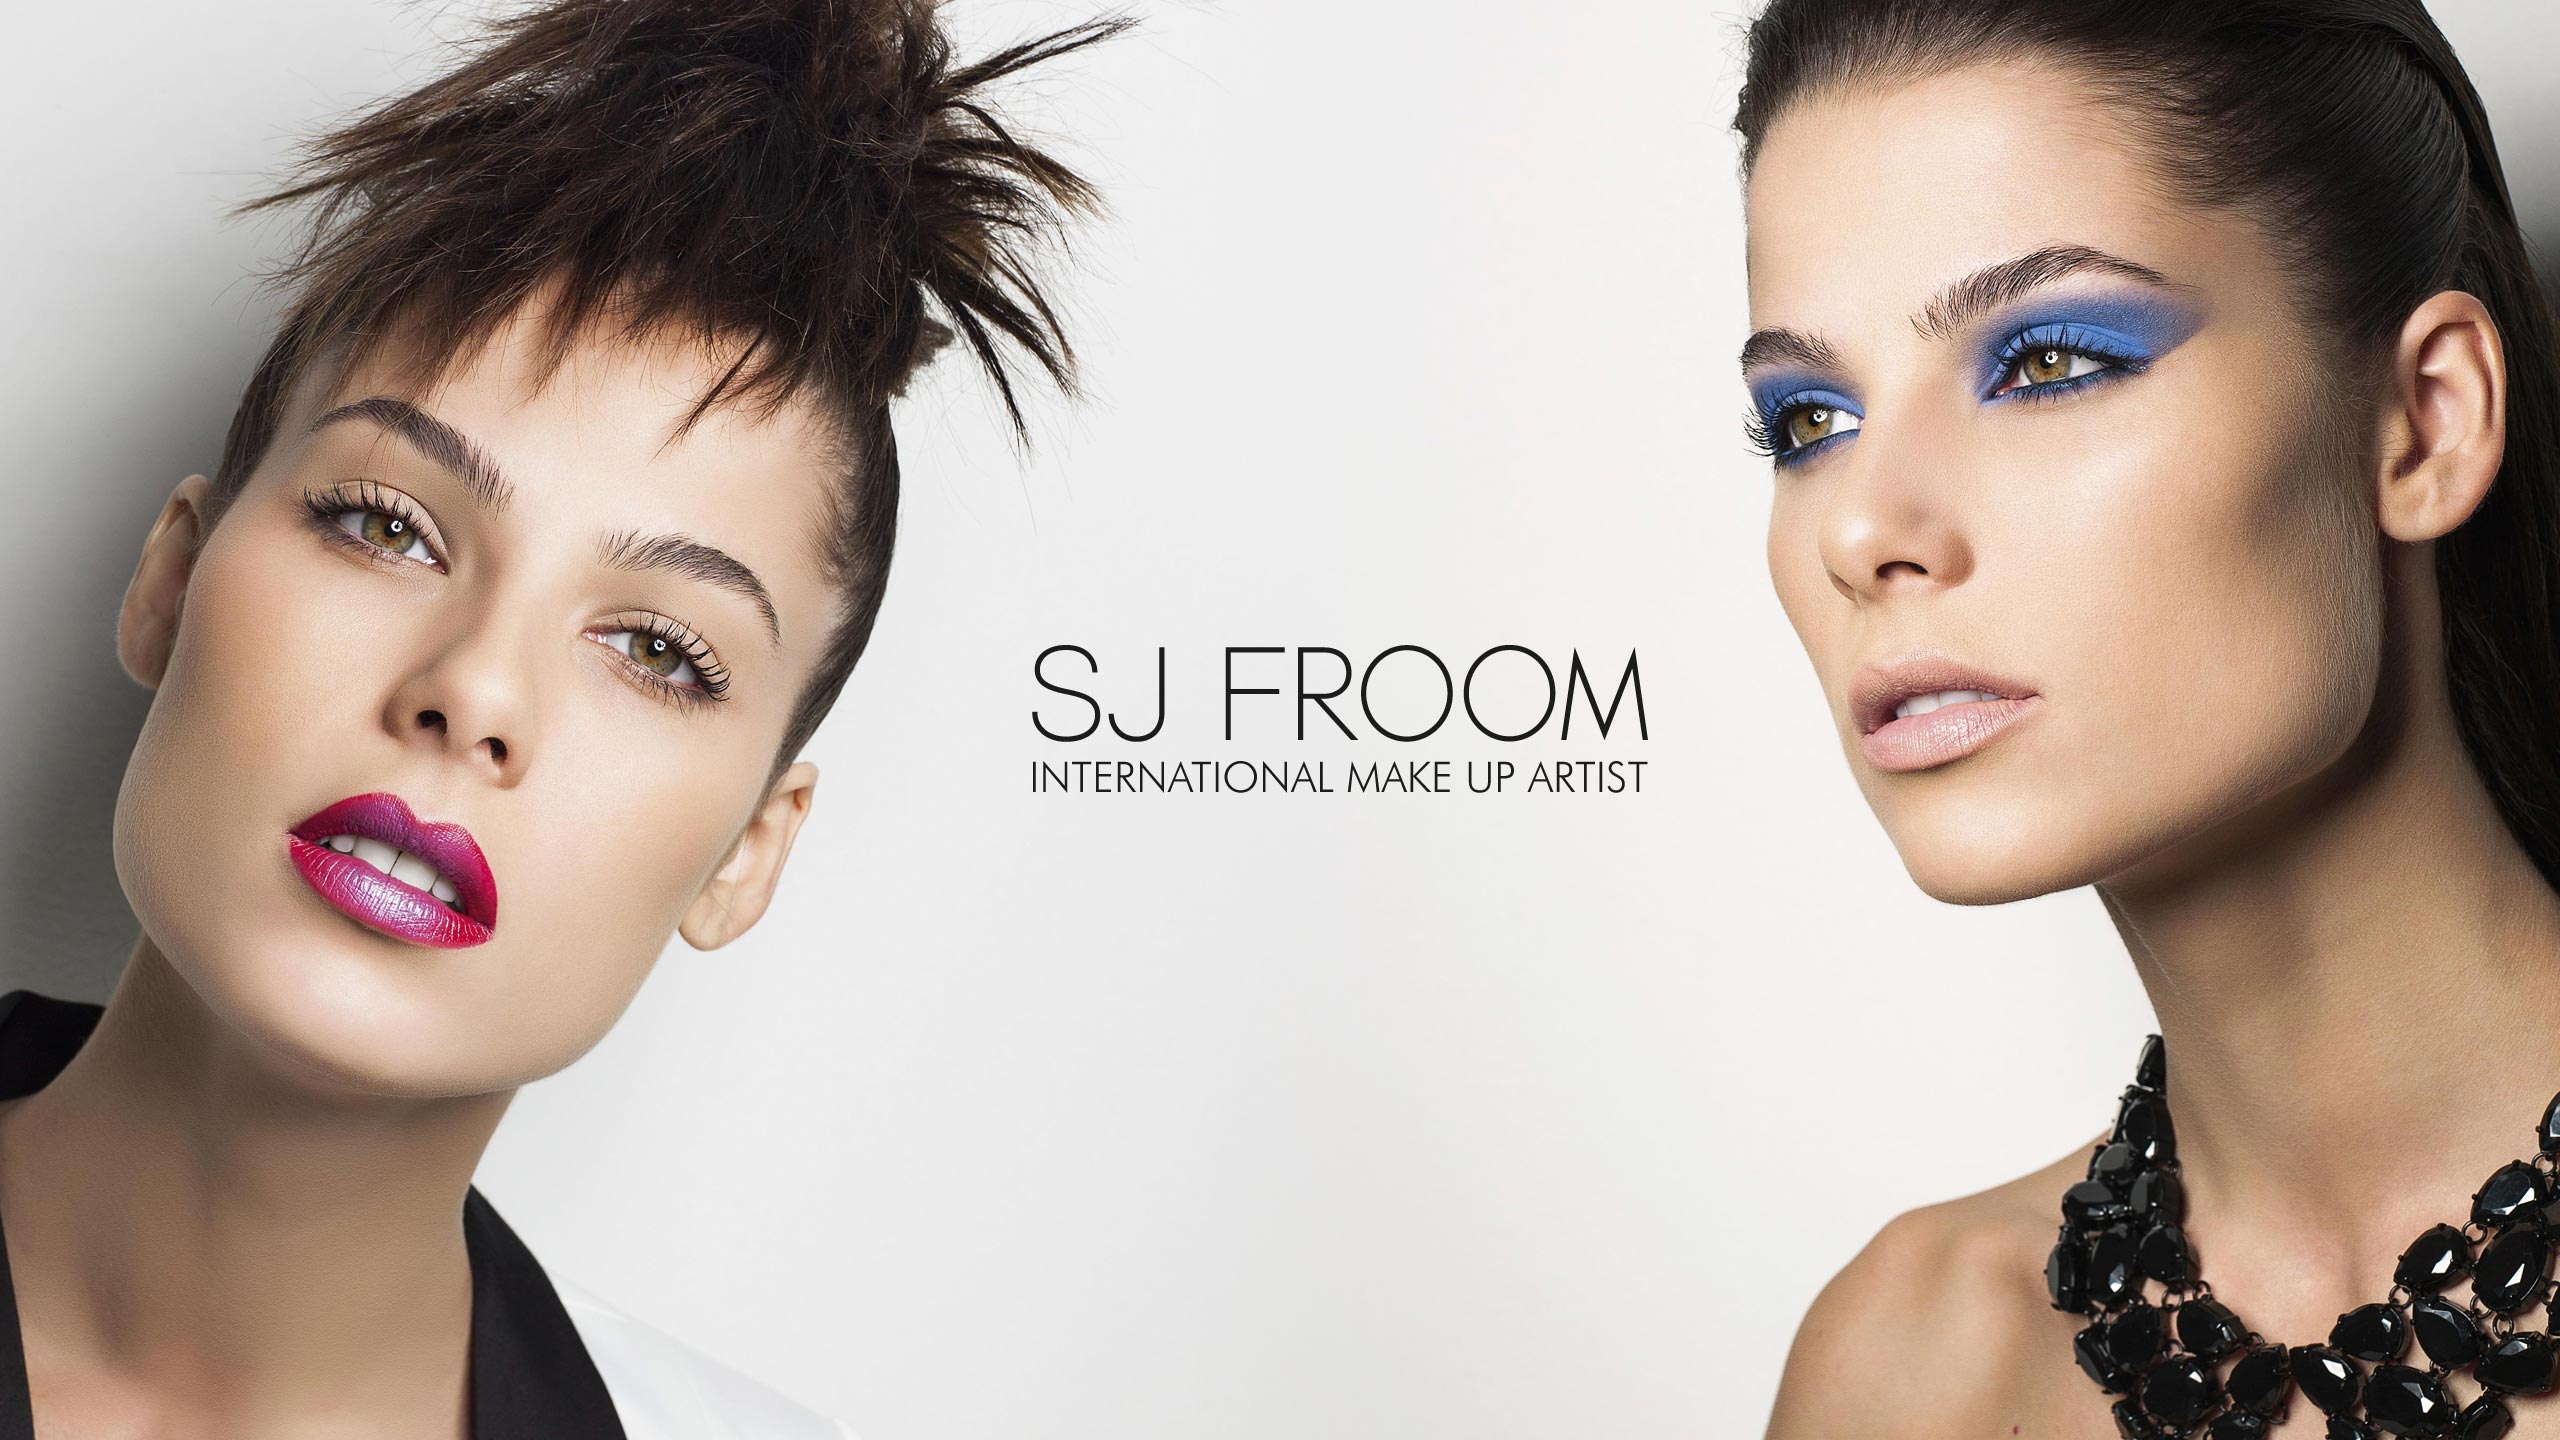 S Froom - International Make-Up Artist